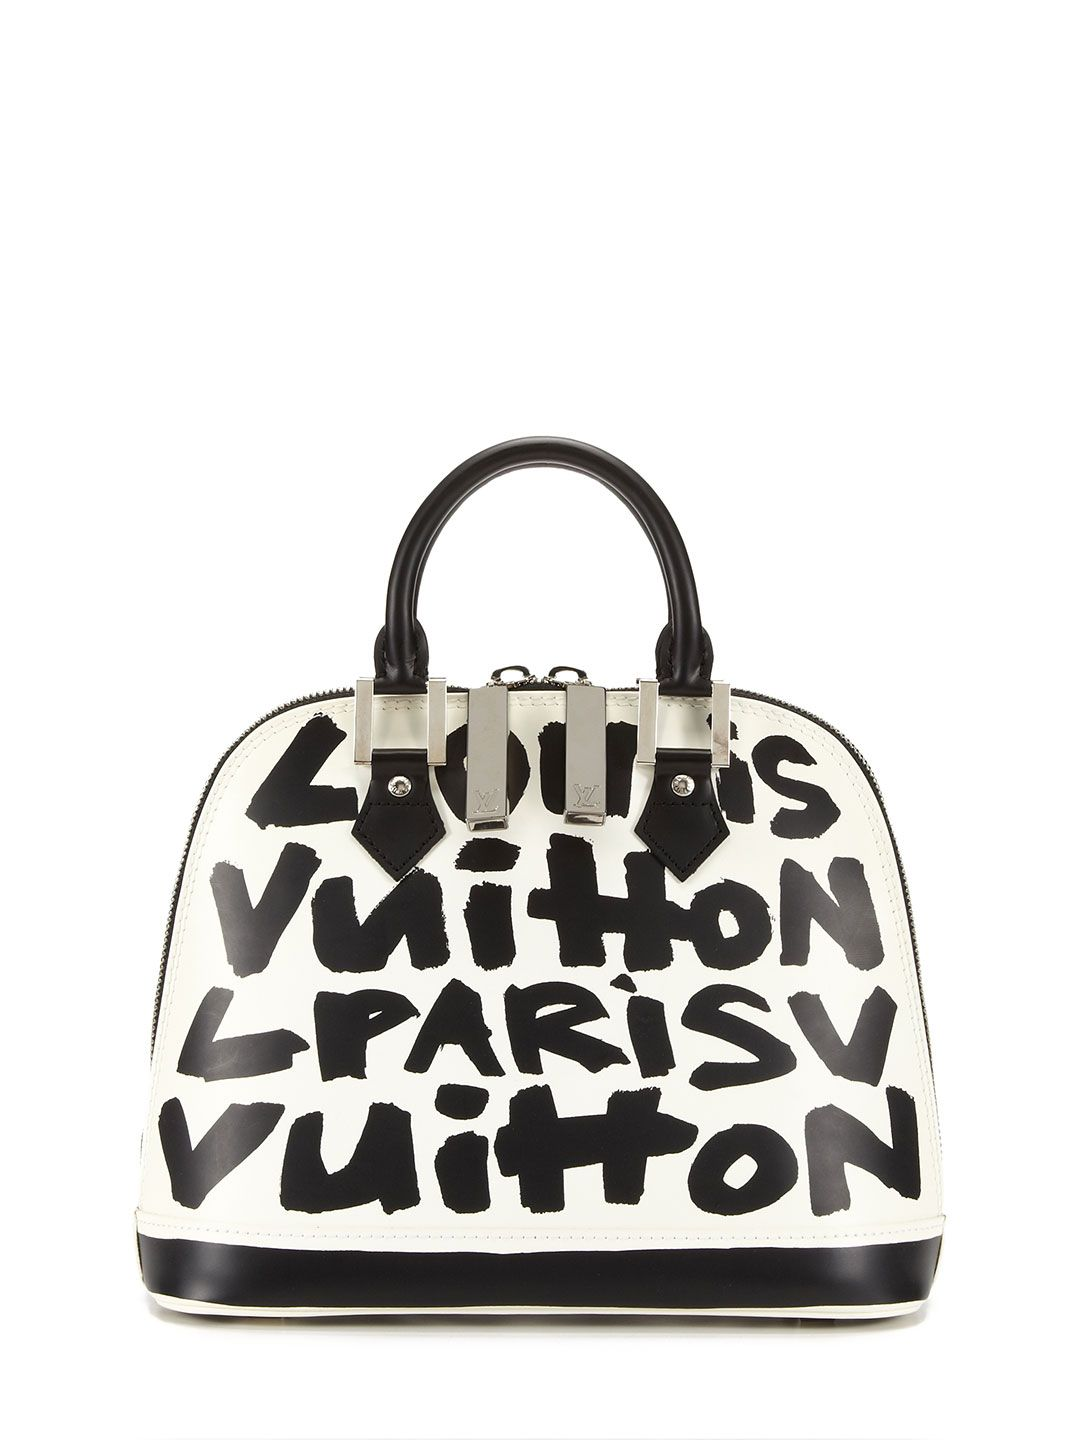 fff5afcfccad Limited Edition Graffiti Alma Haut MM by Louis Vuitton at Gilt ...